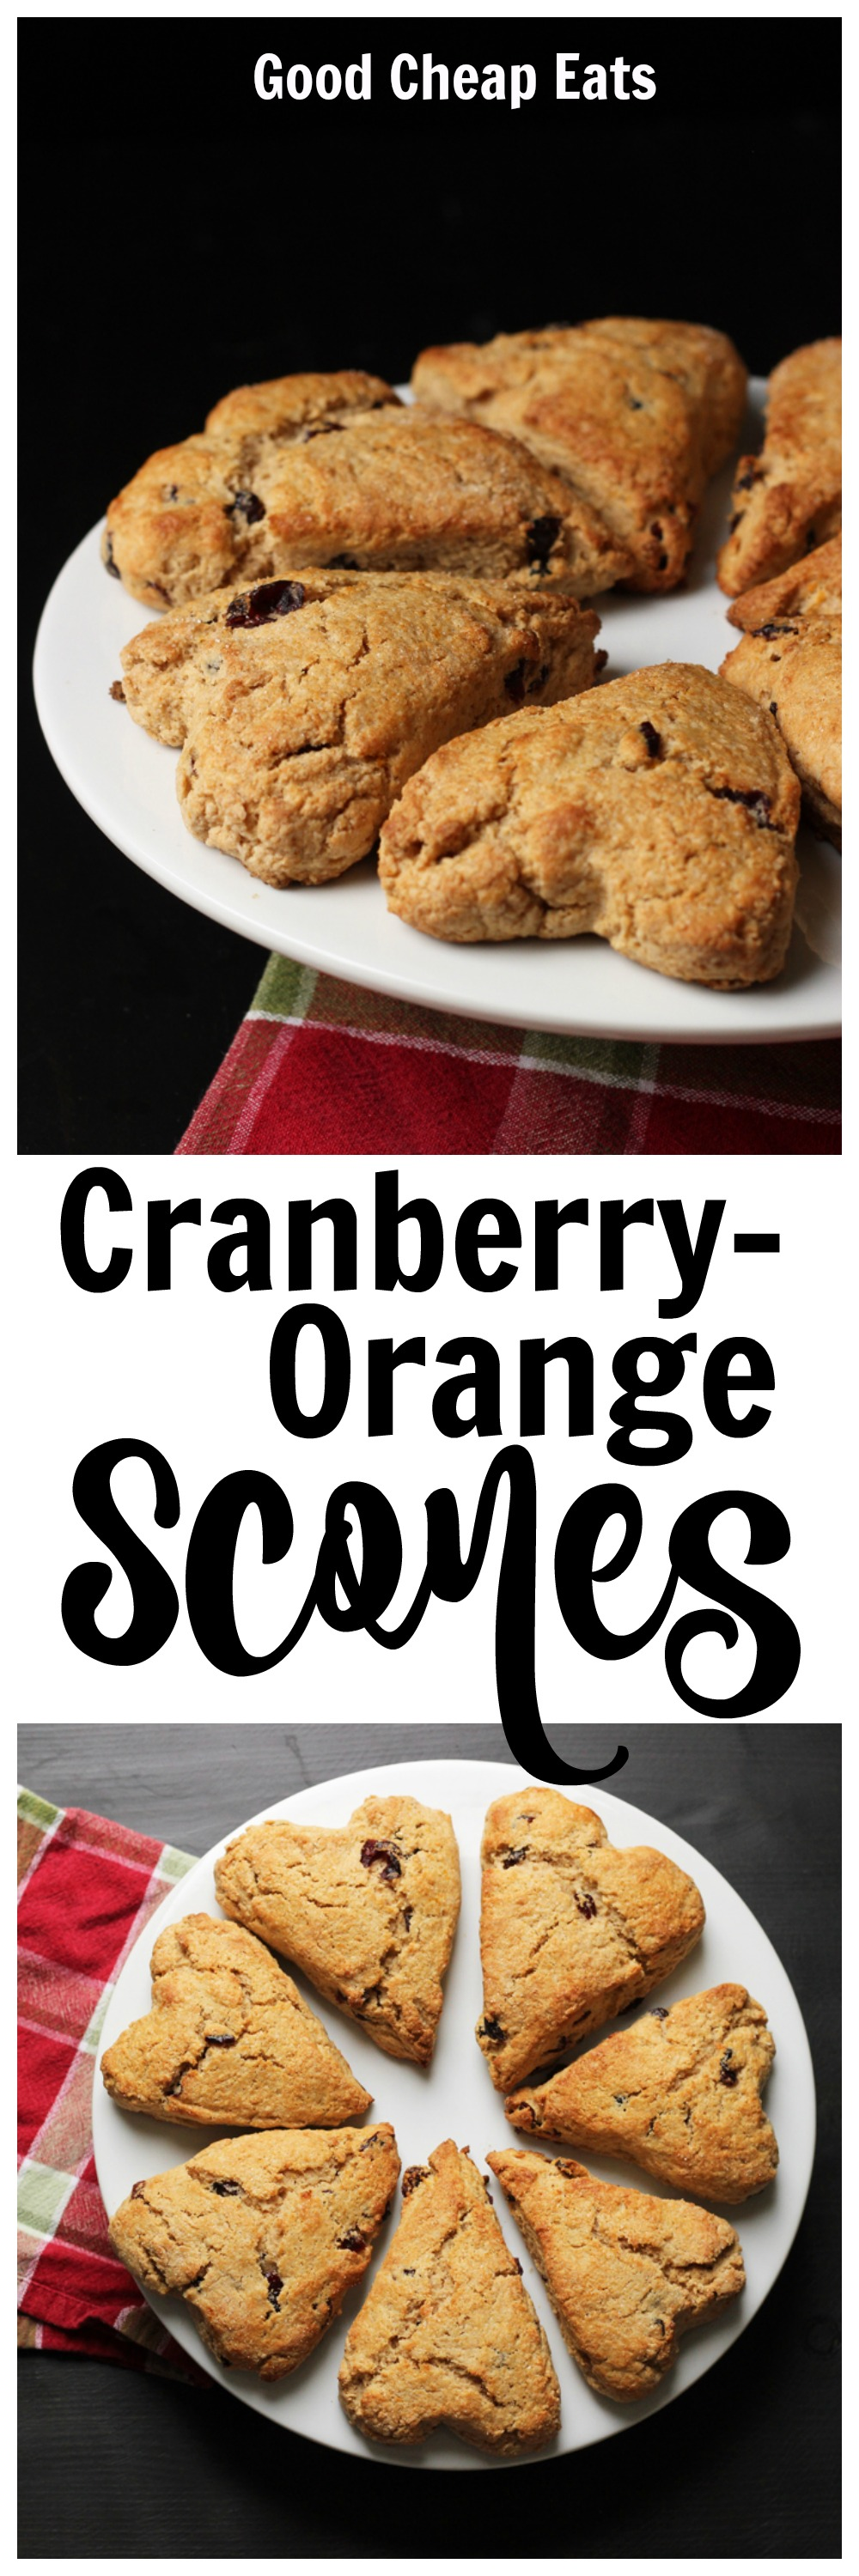 Cranberry-Orange Scones | Good Cheap Eats